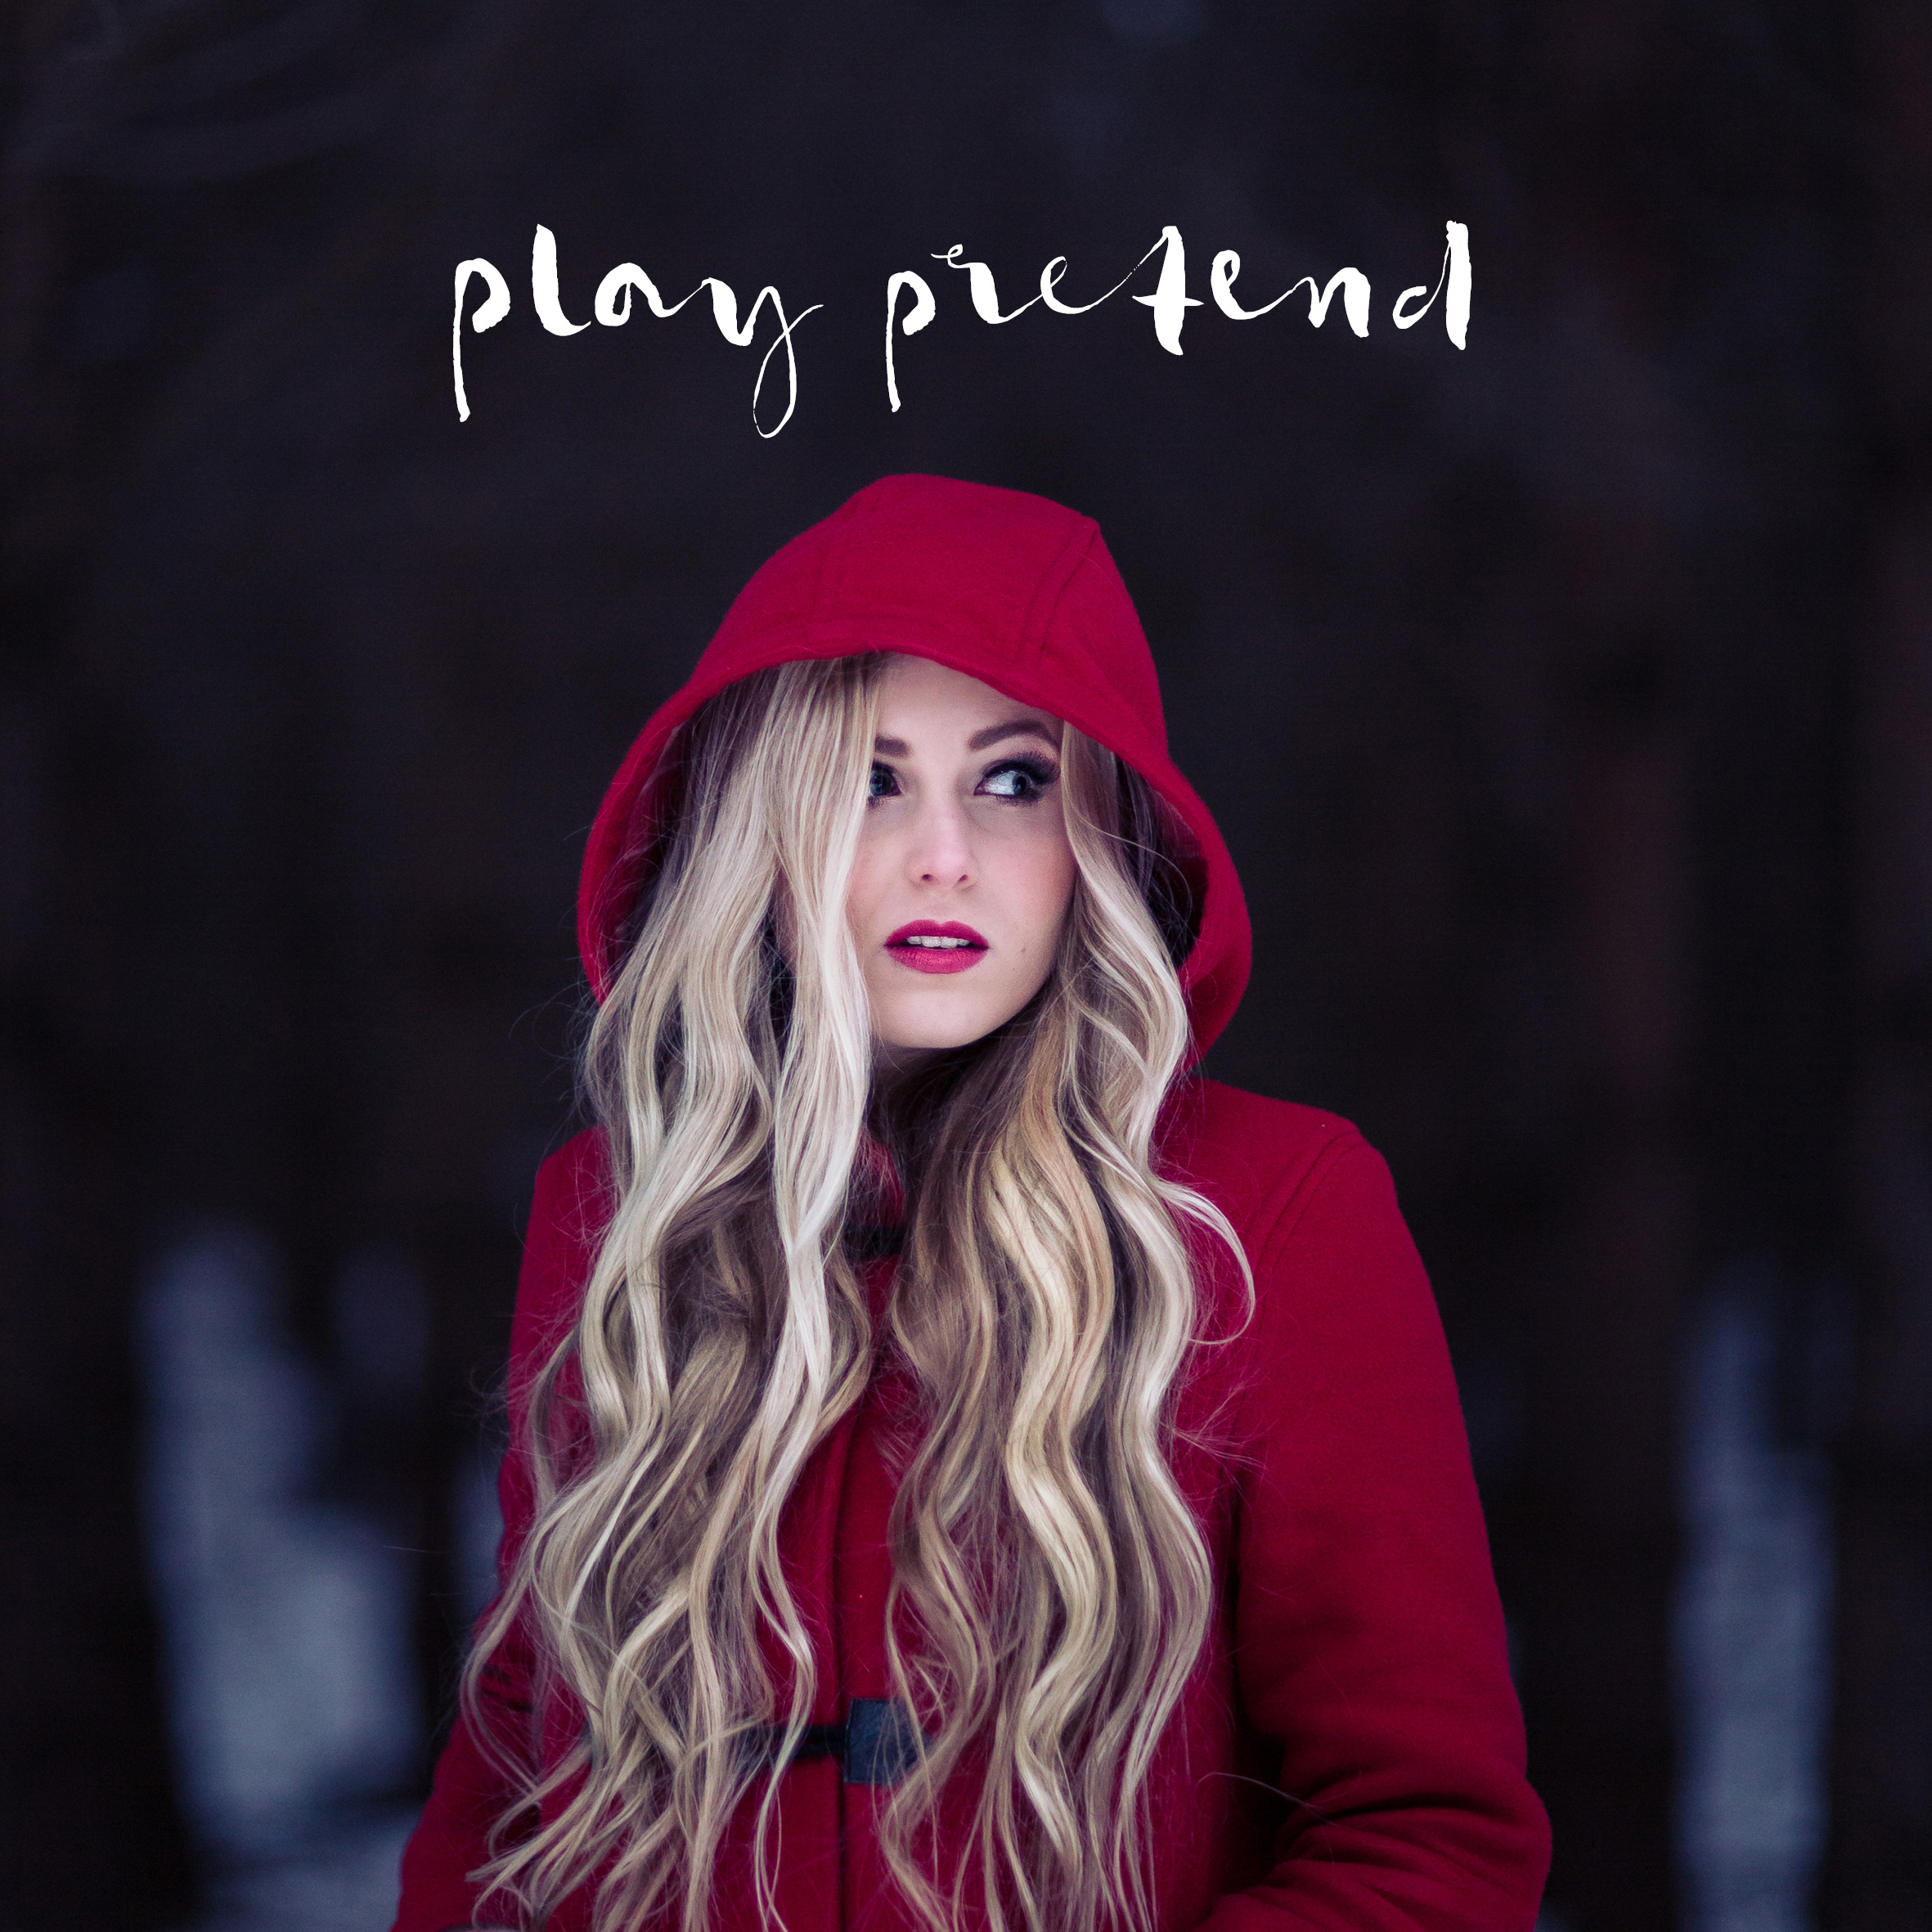 cecilia-kallin-single-cover-play-pretend-web